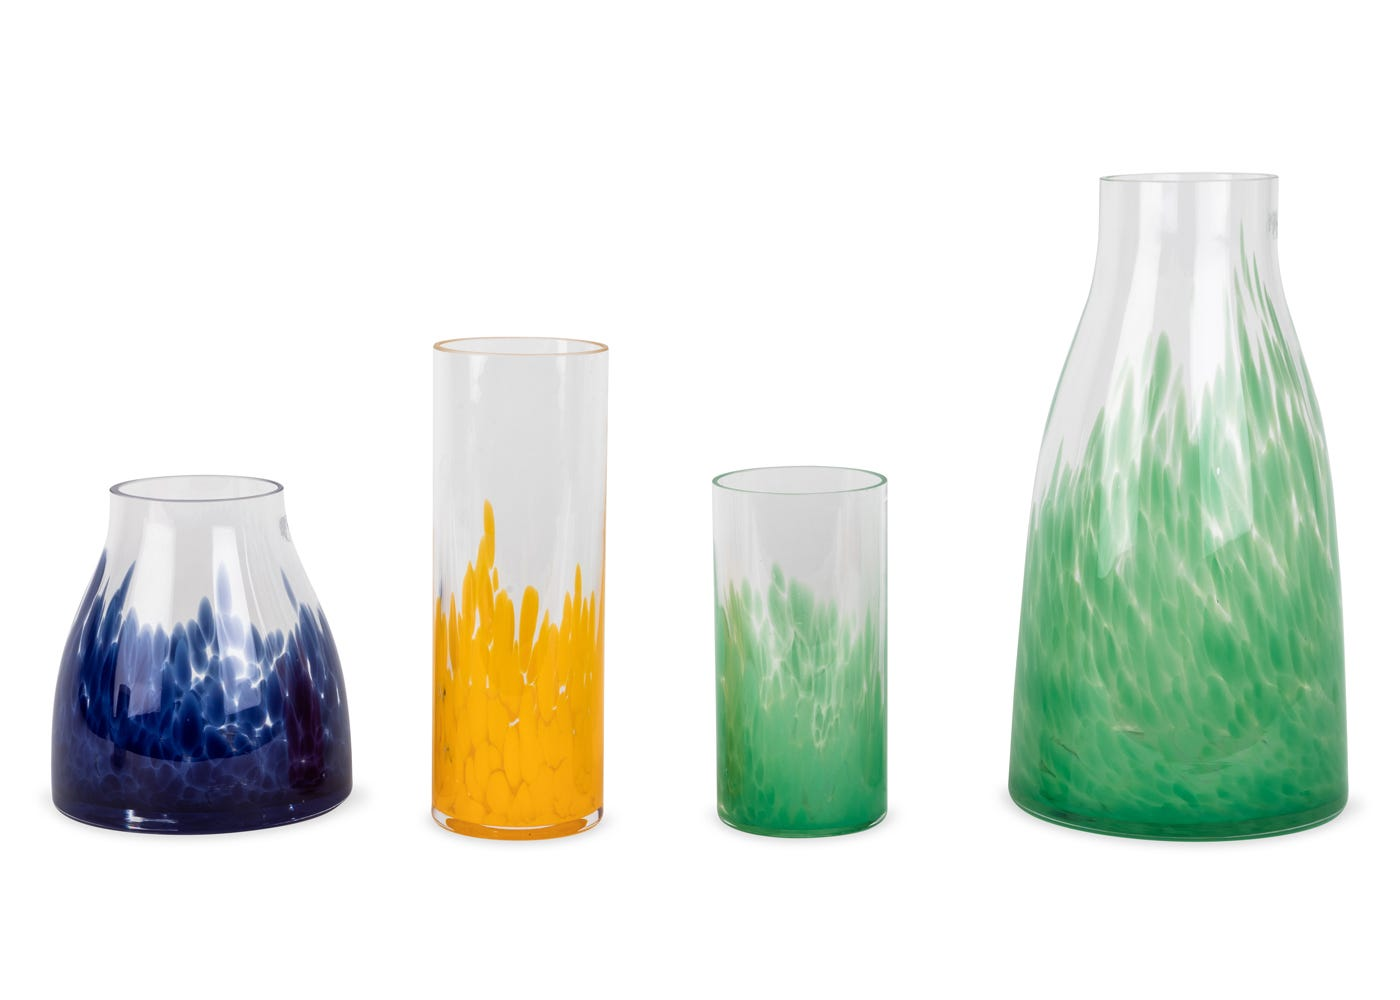 the Dapple range of vases and candleholders